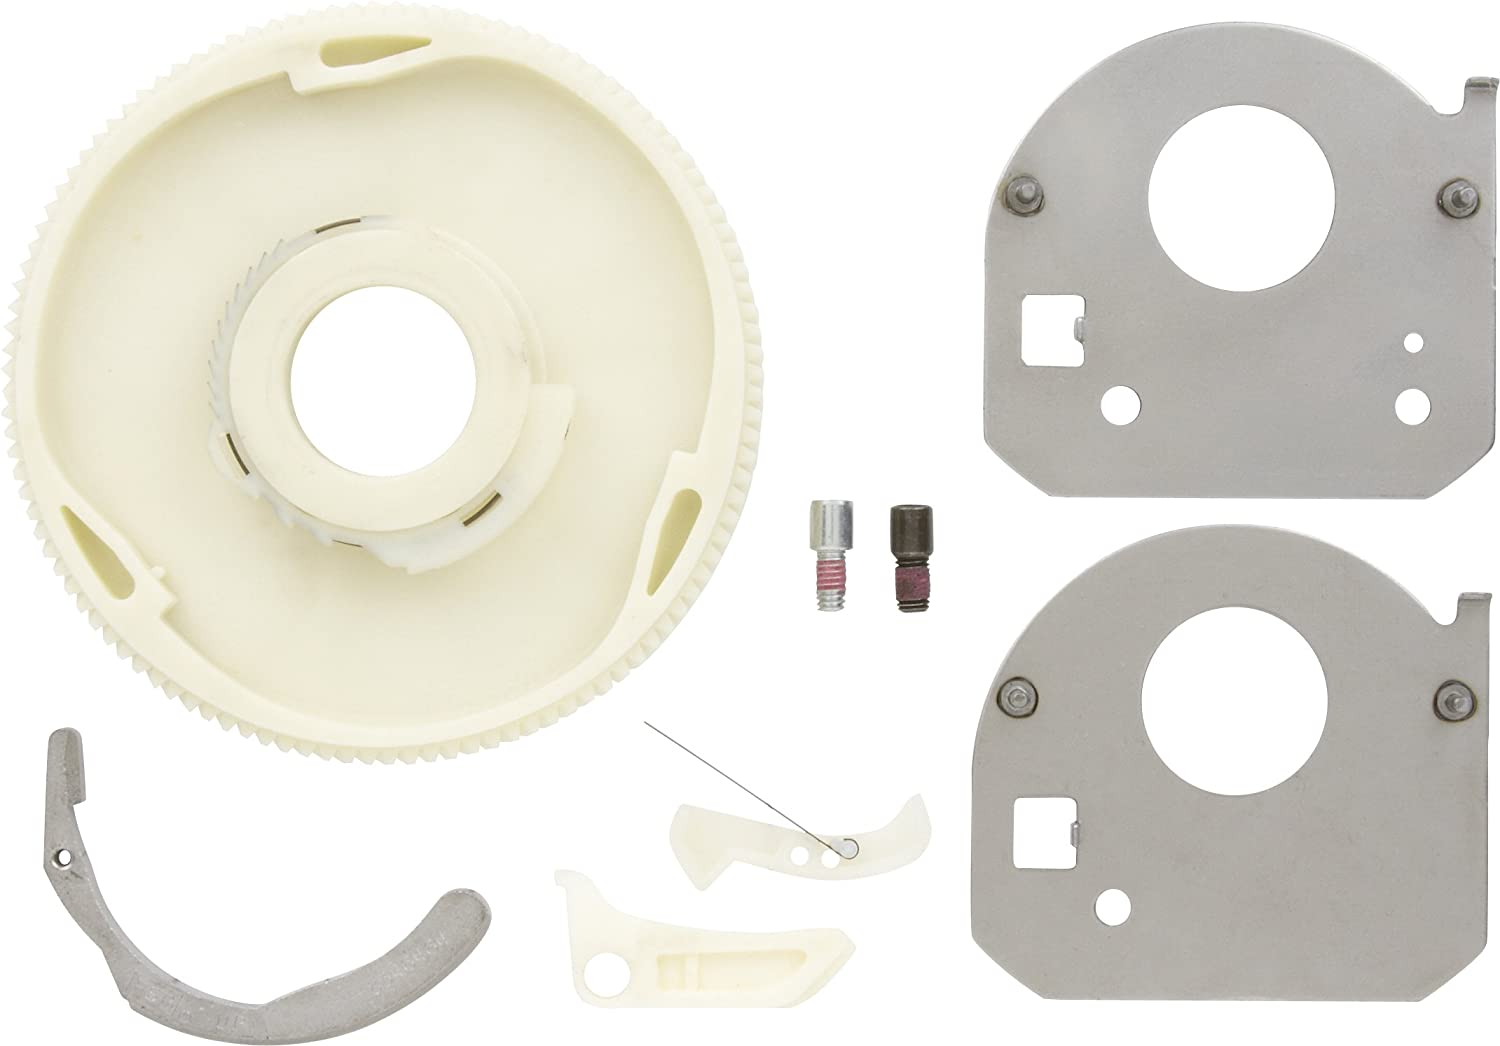 Whirlpool 388253 Neutral Drain Kit